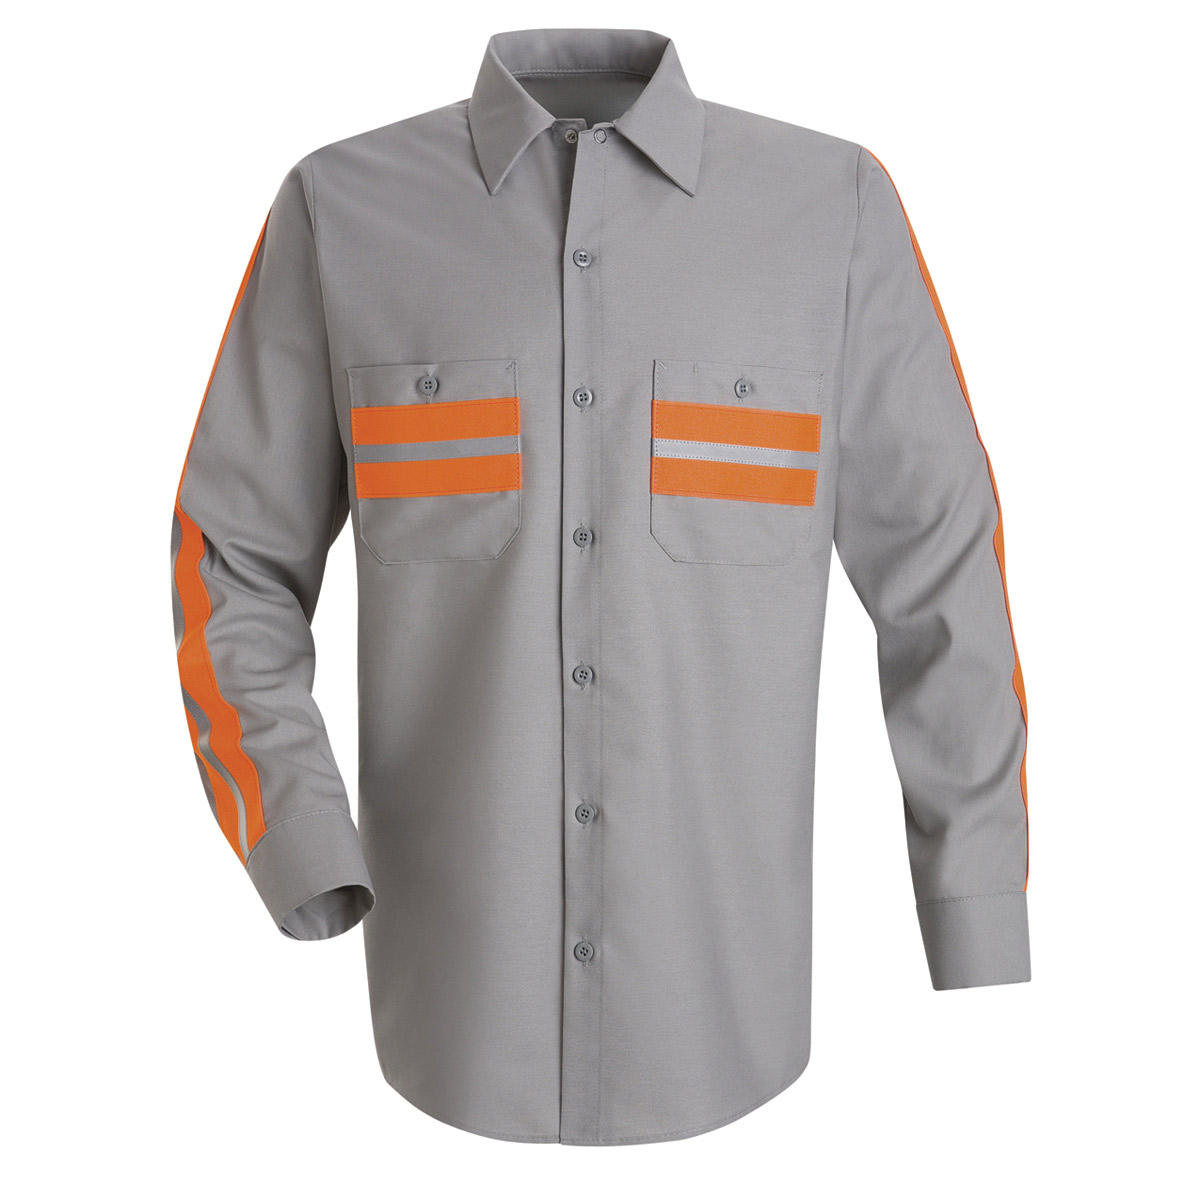 Enhanced Visibility Shirt